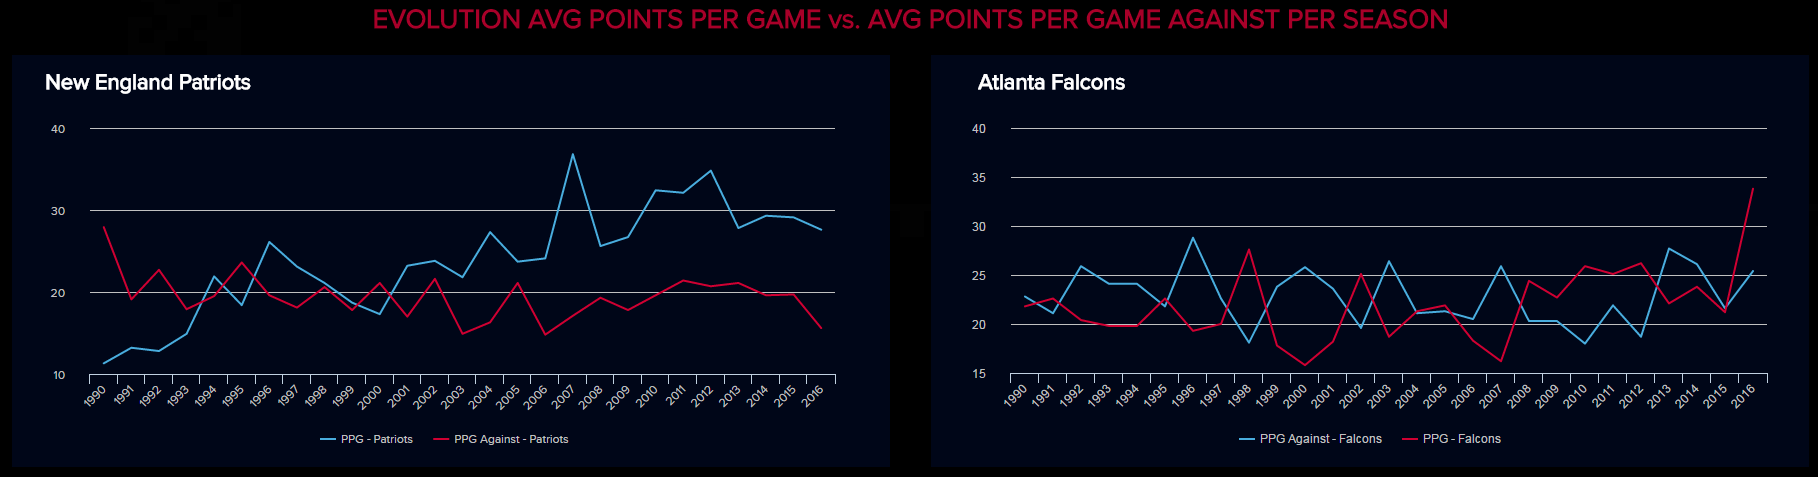 evolution of the average points per game vs average points per game against of the new england patriots vs atlanta falcons per season since 1990